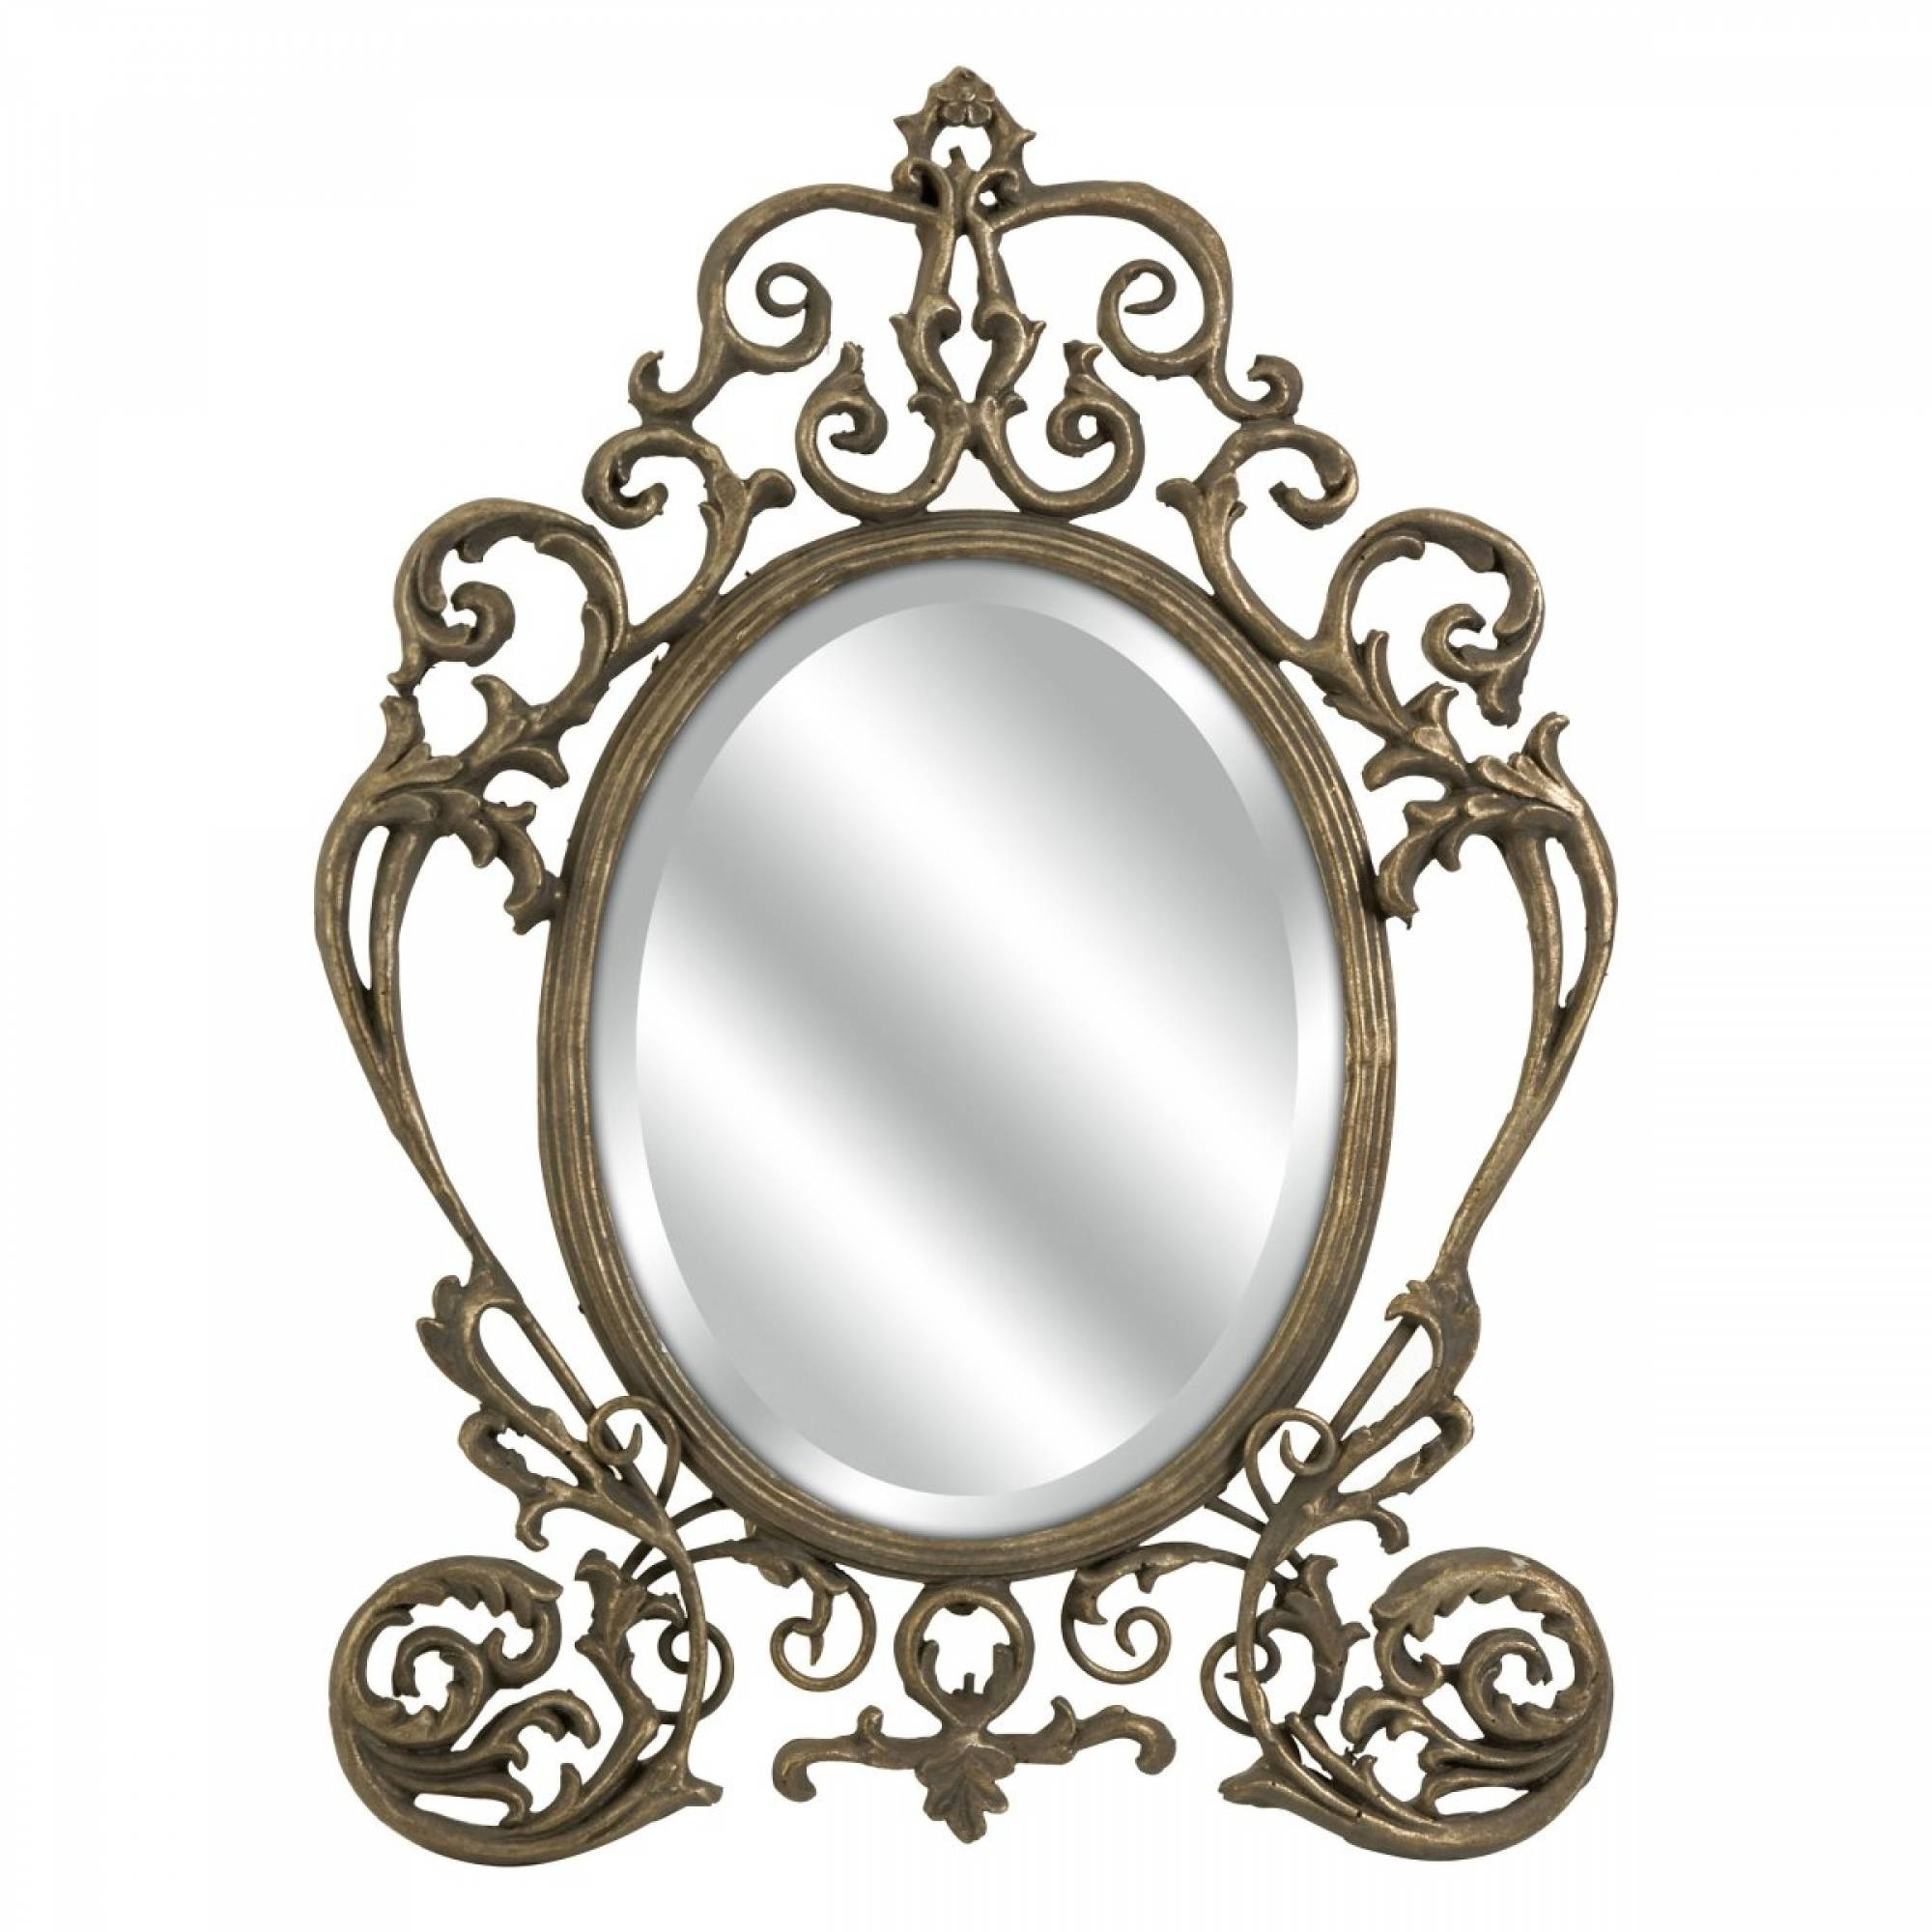 Bathroom: Astounding Baroque Mirror With Unique Frame For Bathroom throughout Large Baroque Mirrors (Image 8 of 25)